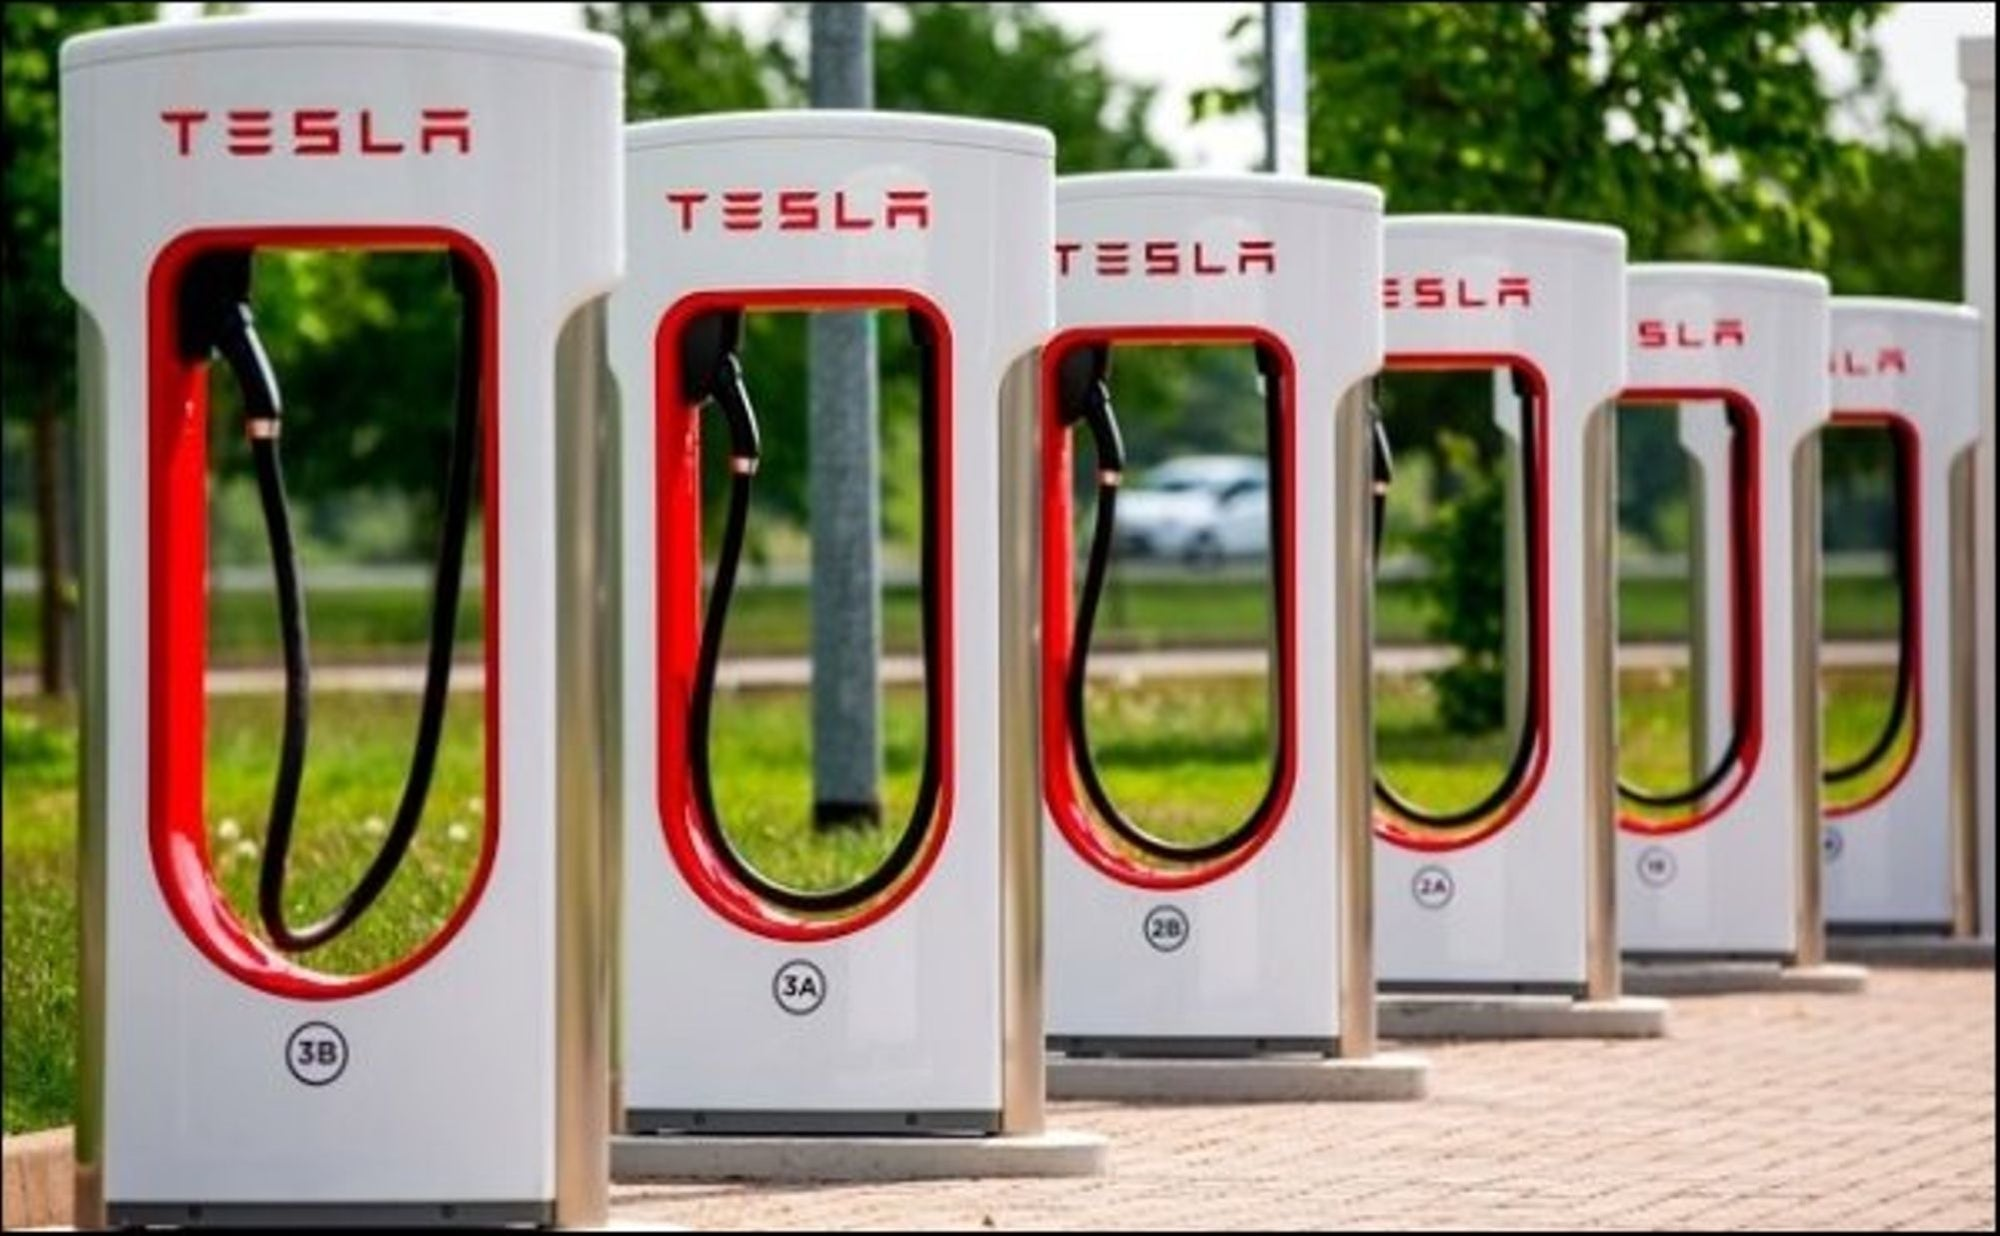 Tesla China To Increase 4000 Superchargers in 2020 for High Demanding Model 3